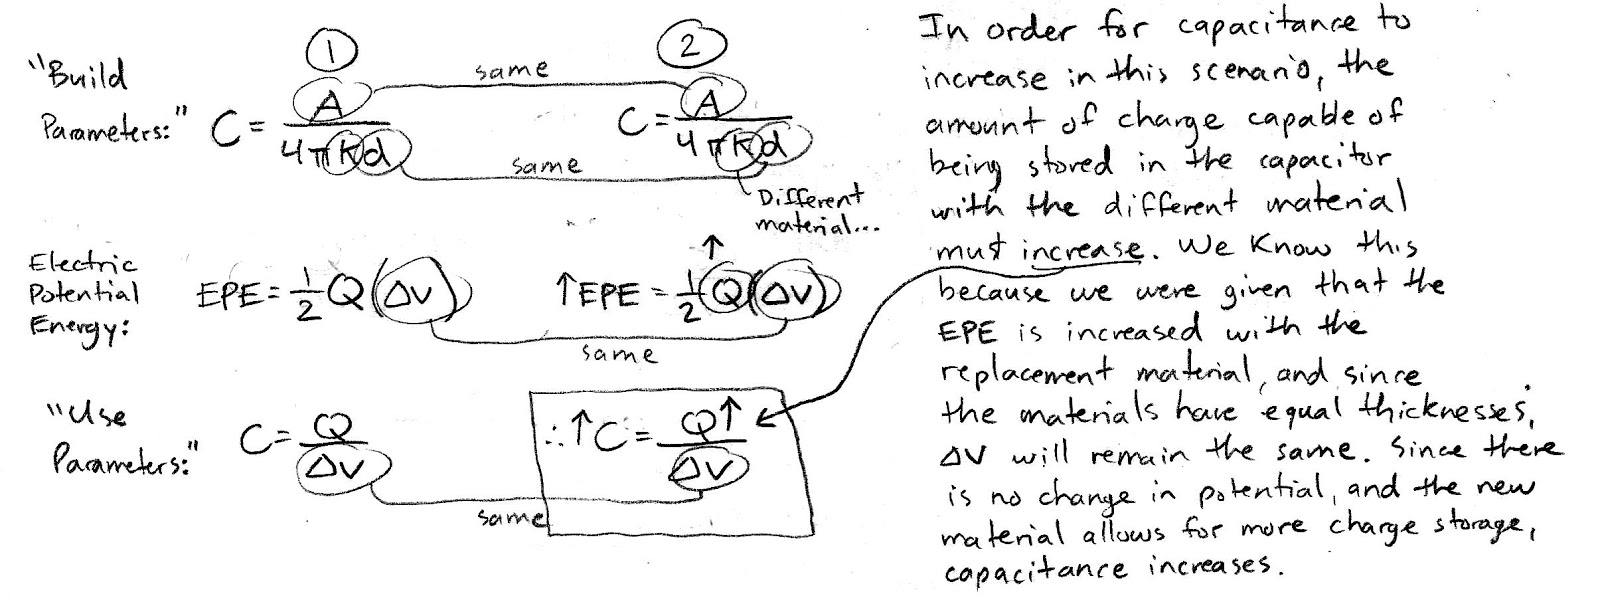 capacitor essay A capacitor is a passive two-terminal electrical component that stores potential energy in an electric field the effect of a capacitor is known as capacitance while some capacitance exists between any two electrical conductors in proximity in a circuit, a capacitor is a component designed to add capacitance to a circuit.